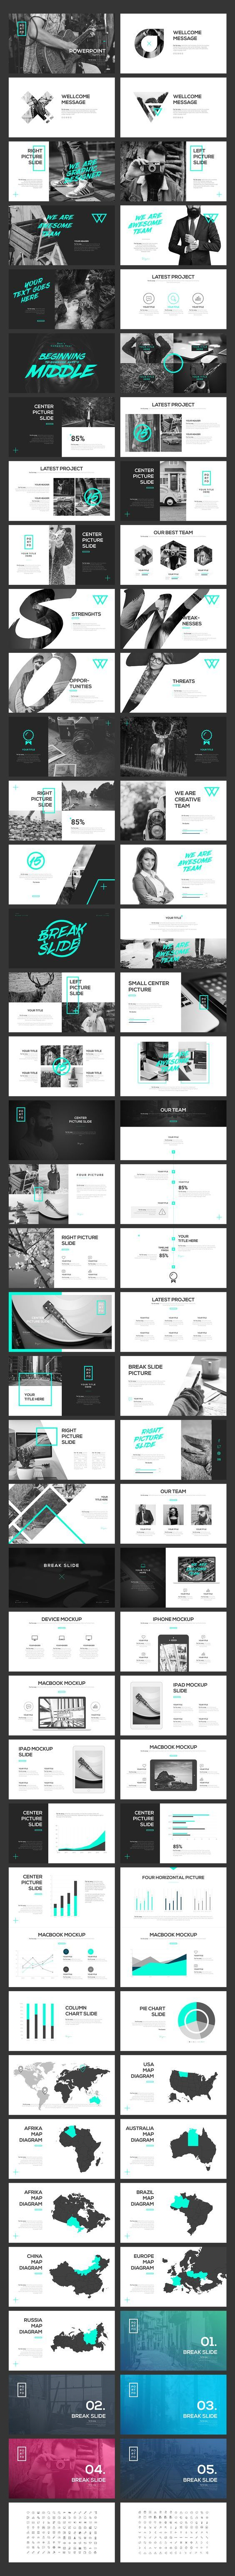 Template de présentation. Beau #look pour un site web. Presentation template. would be a great look for a #website.: